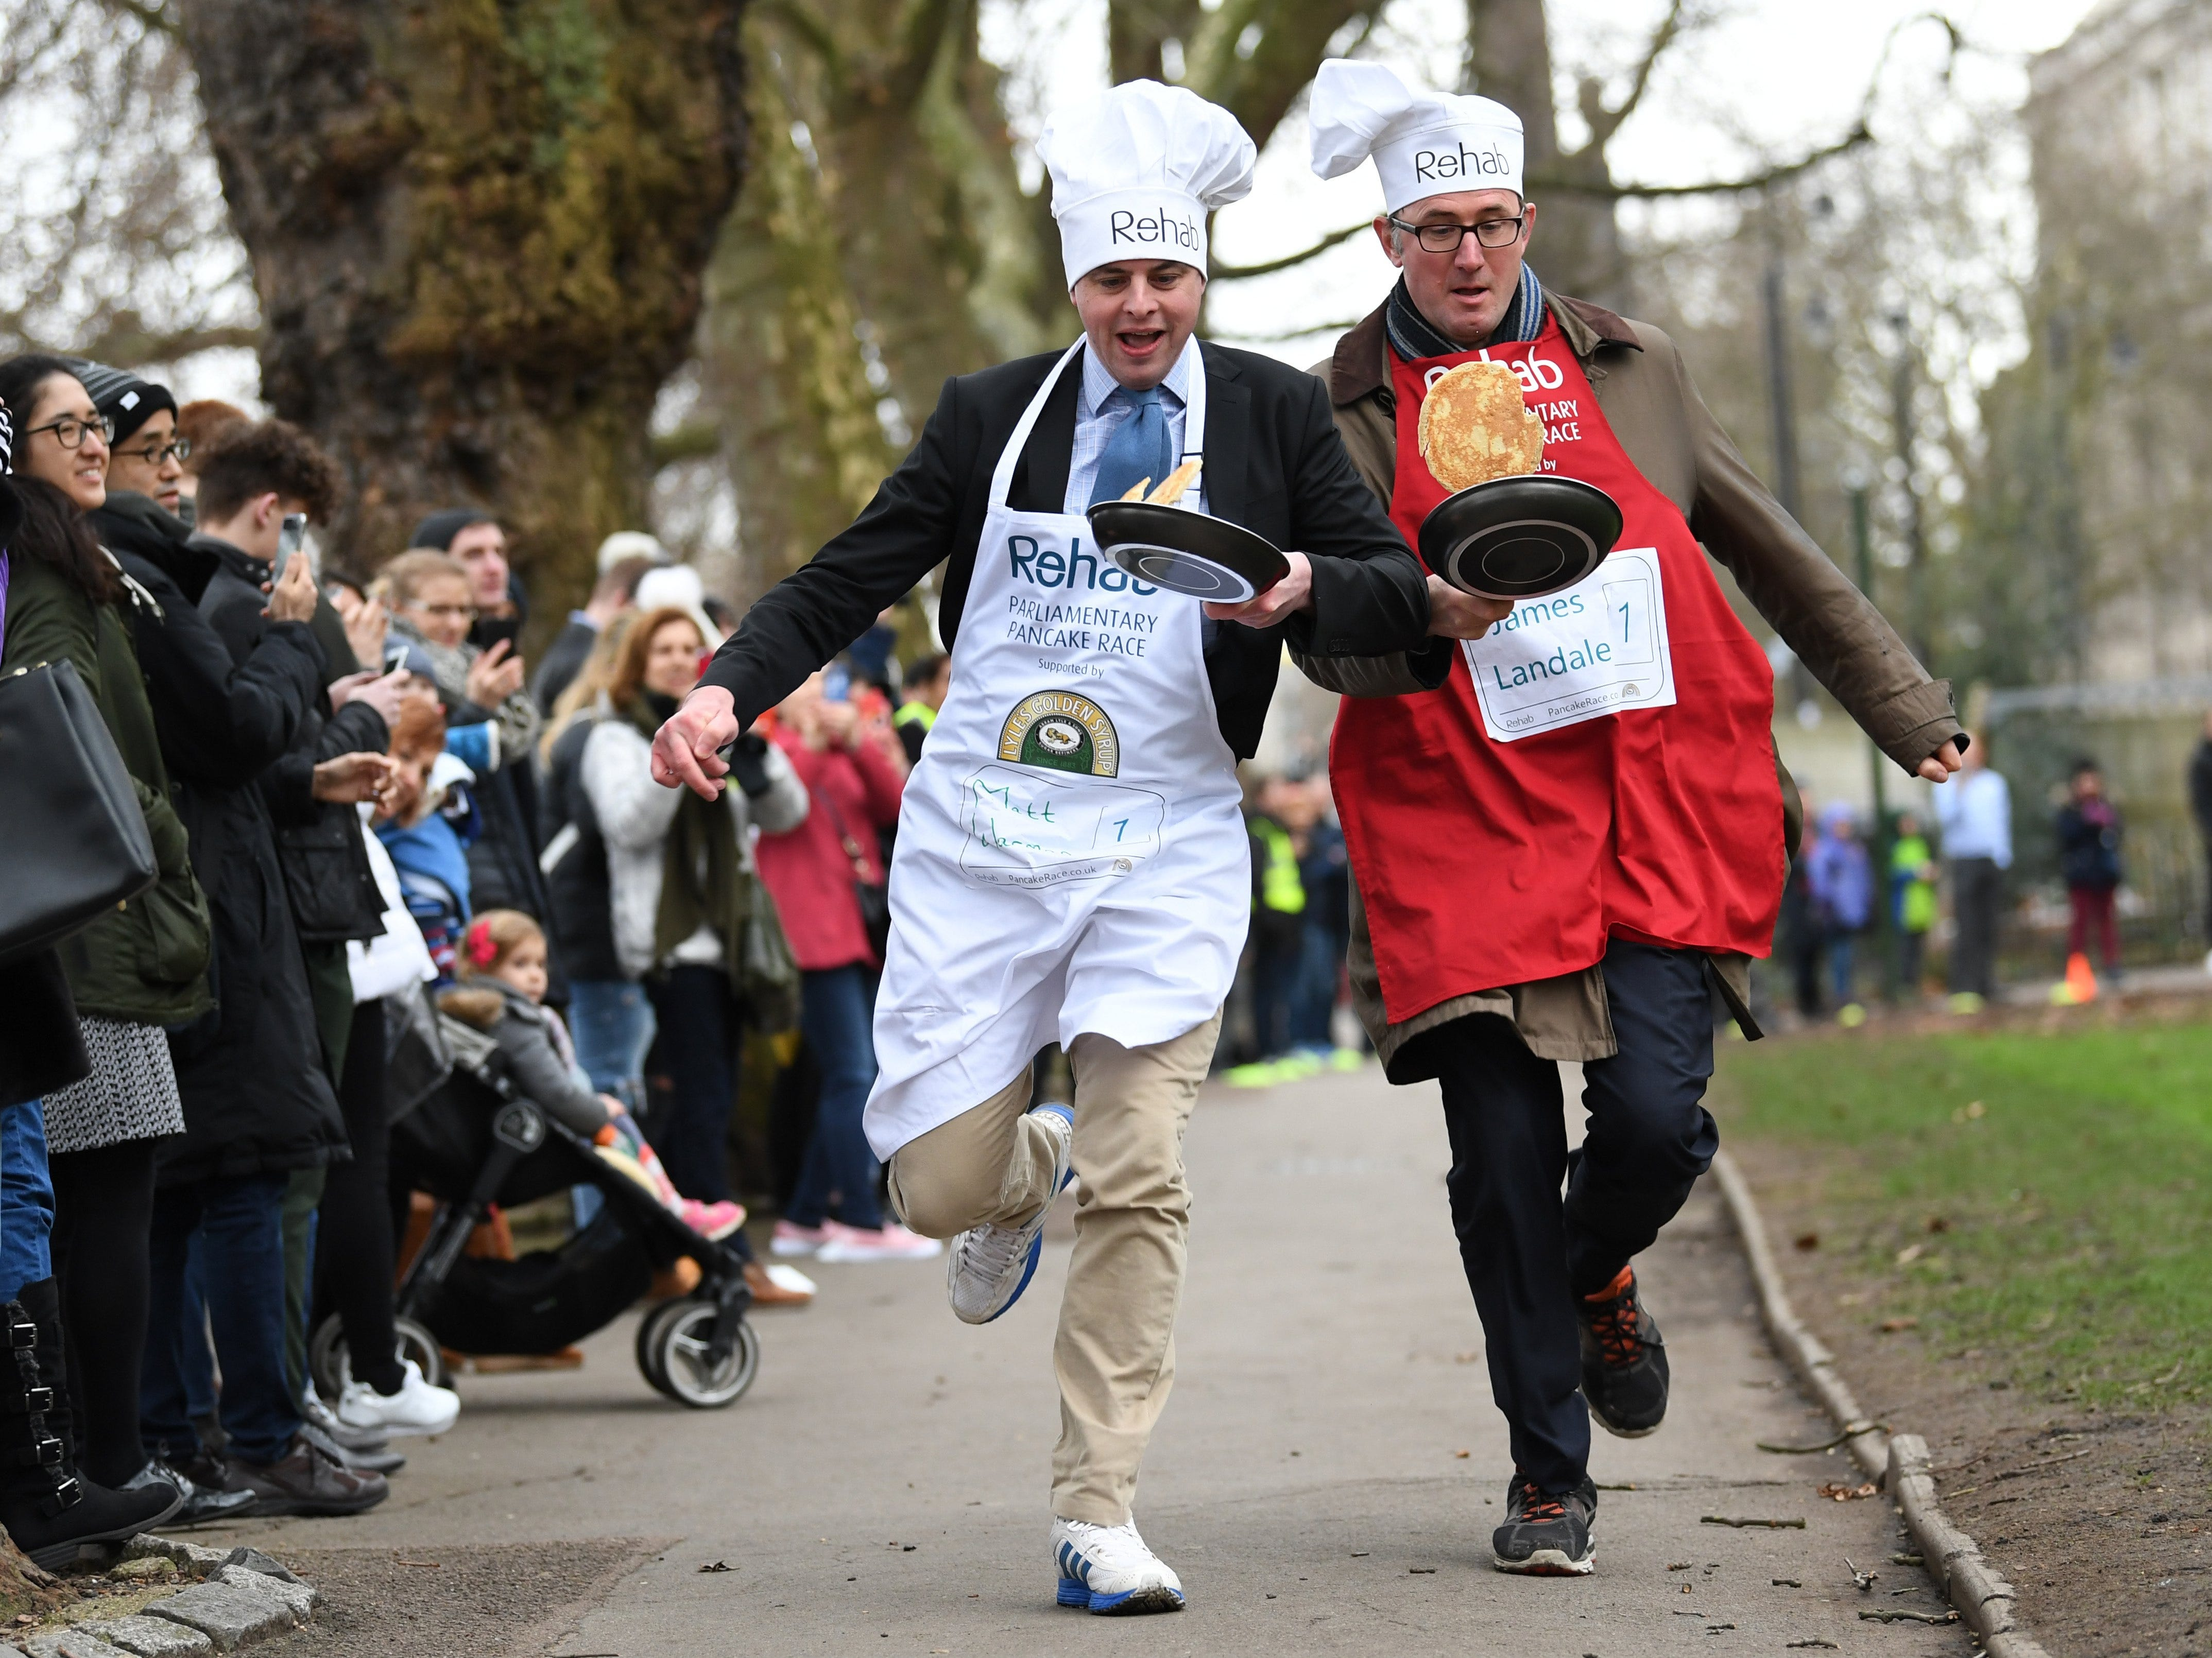 Feb. 13, 2018: Contestants Matt Warman, left, and BBC journalist James Lansdale take part in the annual Parliamentary Pancake Race in Westminster in London. The race is held on Shrove Tuesday between members of the Houses of Lords and Commons and members of media to raise money for charity.